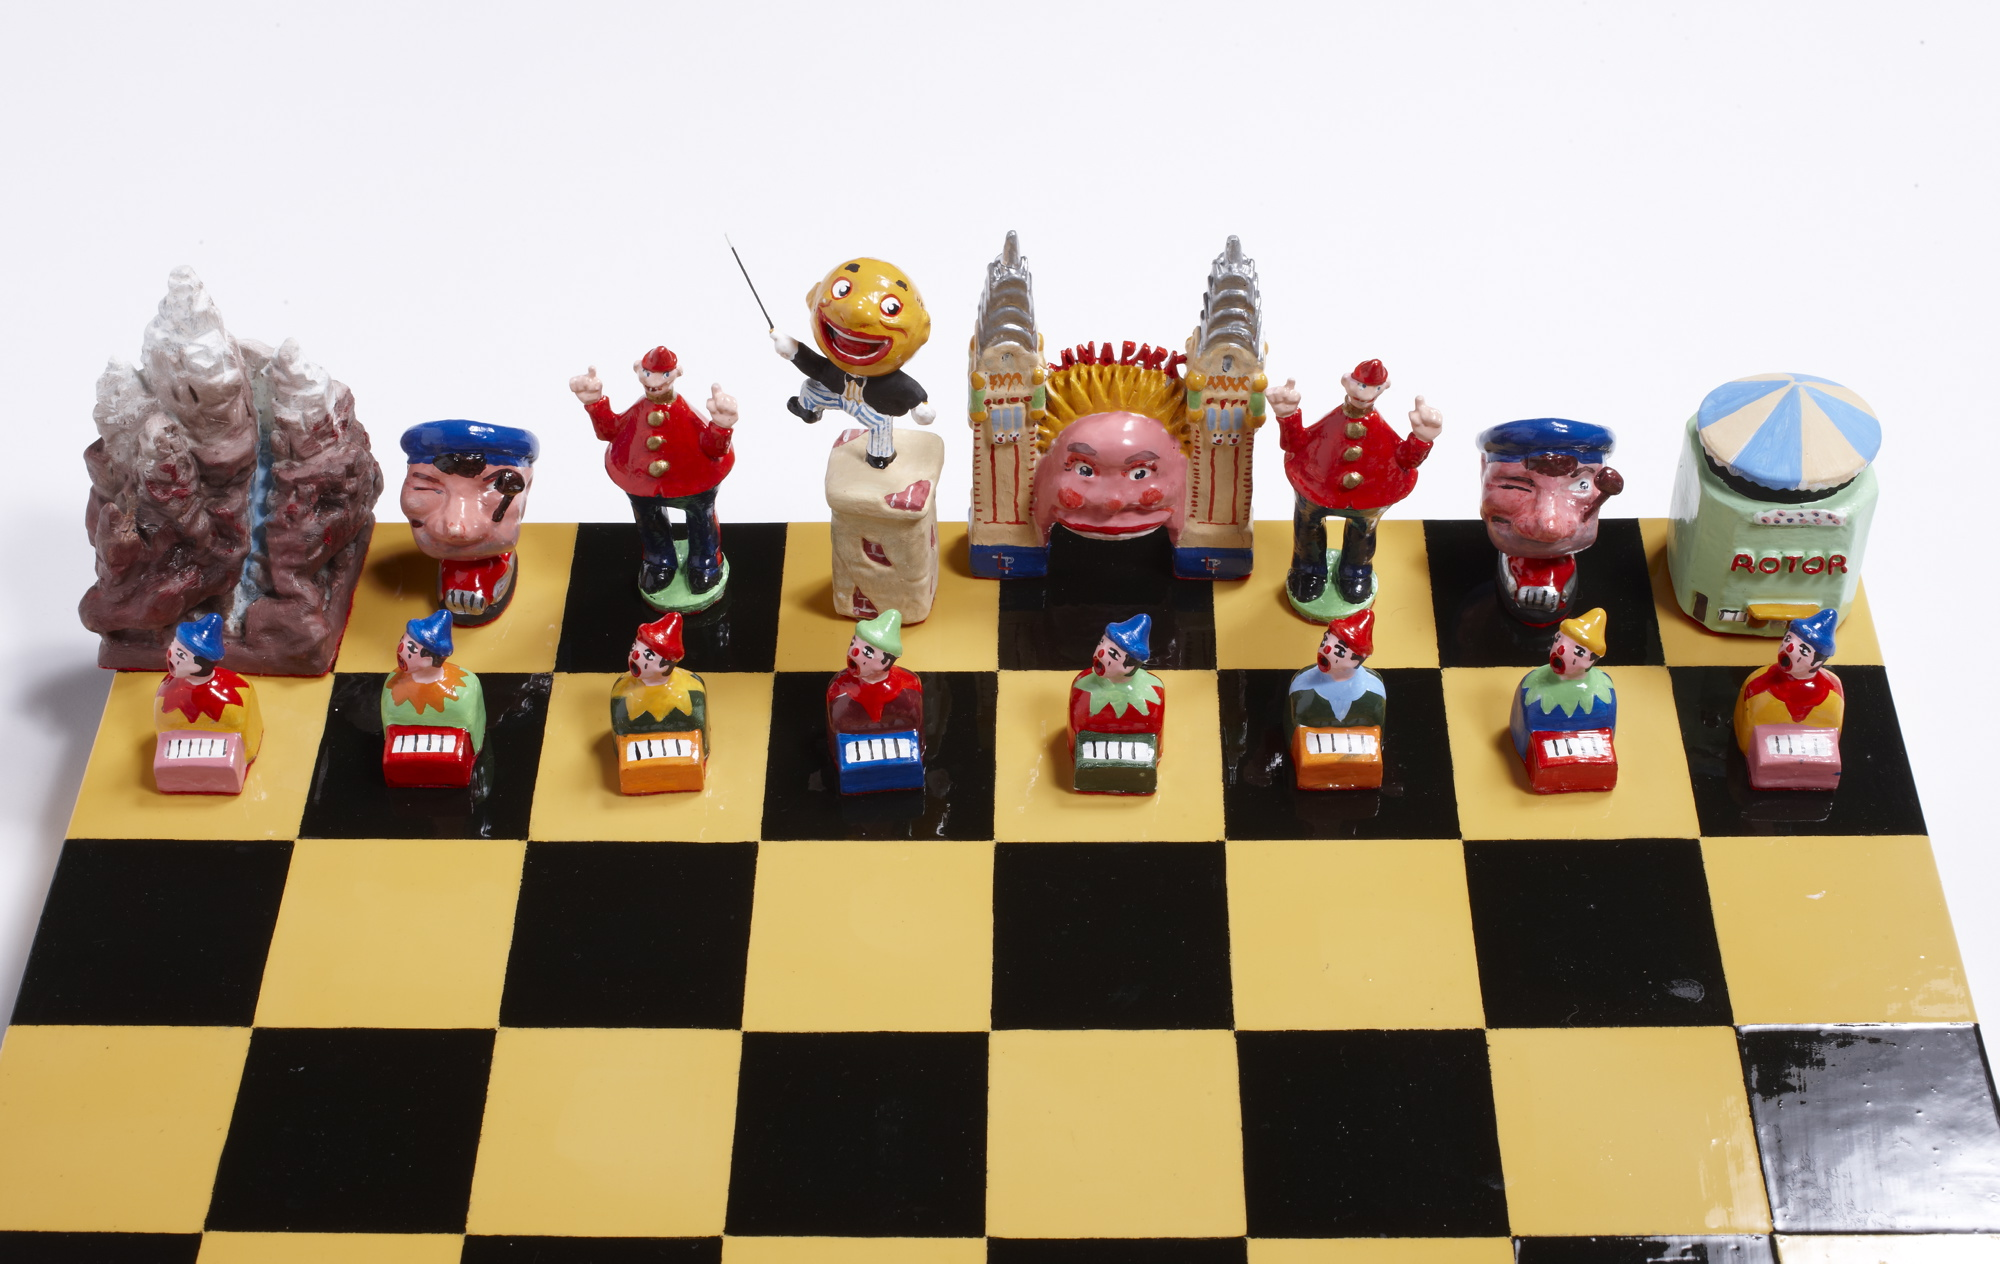 Hand made and painted chess set with pieces in shapes from Luna Park characters or rides.